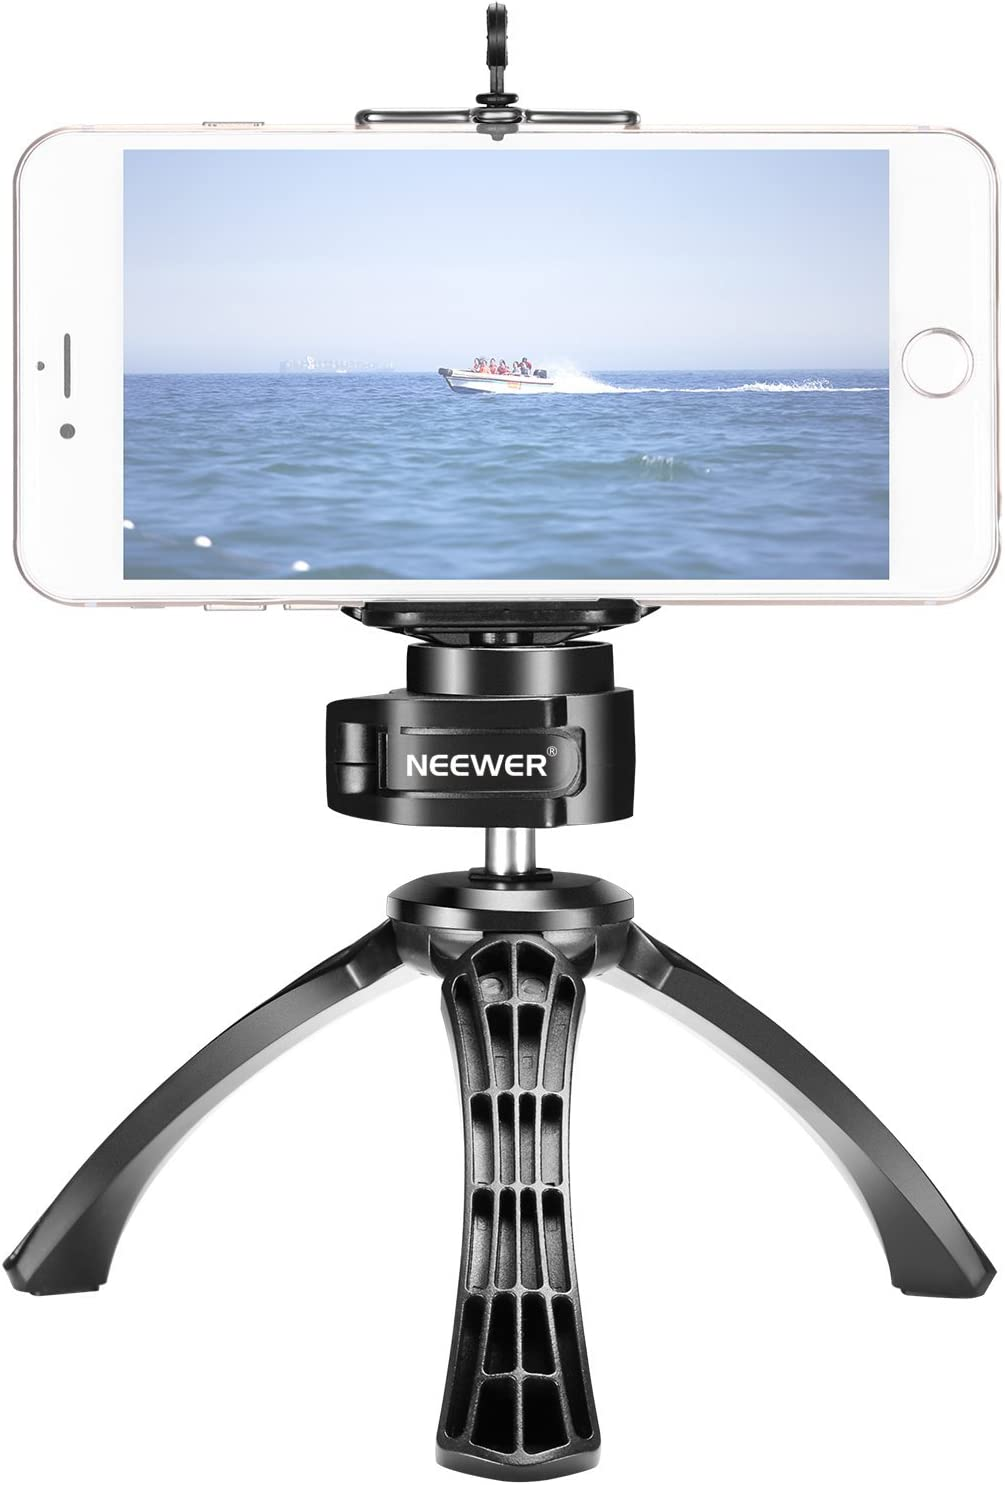 Neewer Flexible Desktop Mini Tripod Easy-to-use with 360 and Louisville-Jefferson County Mall Deg Phone Clamp